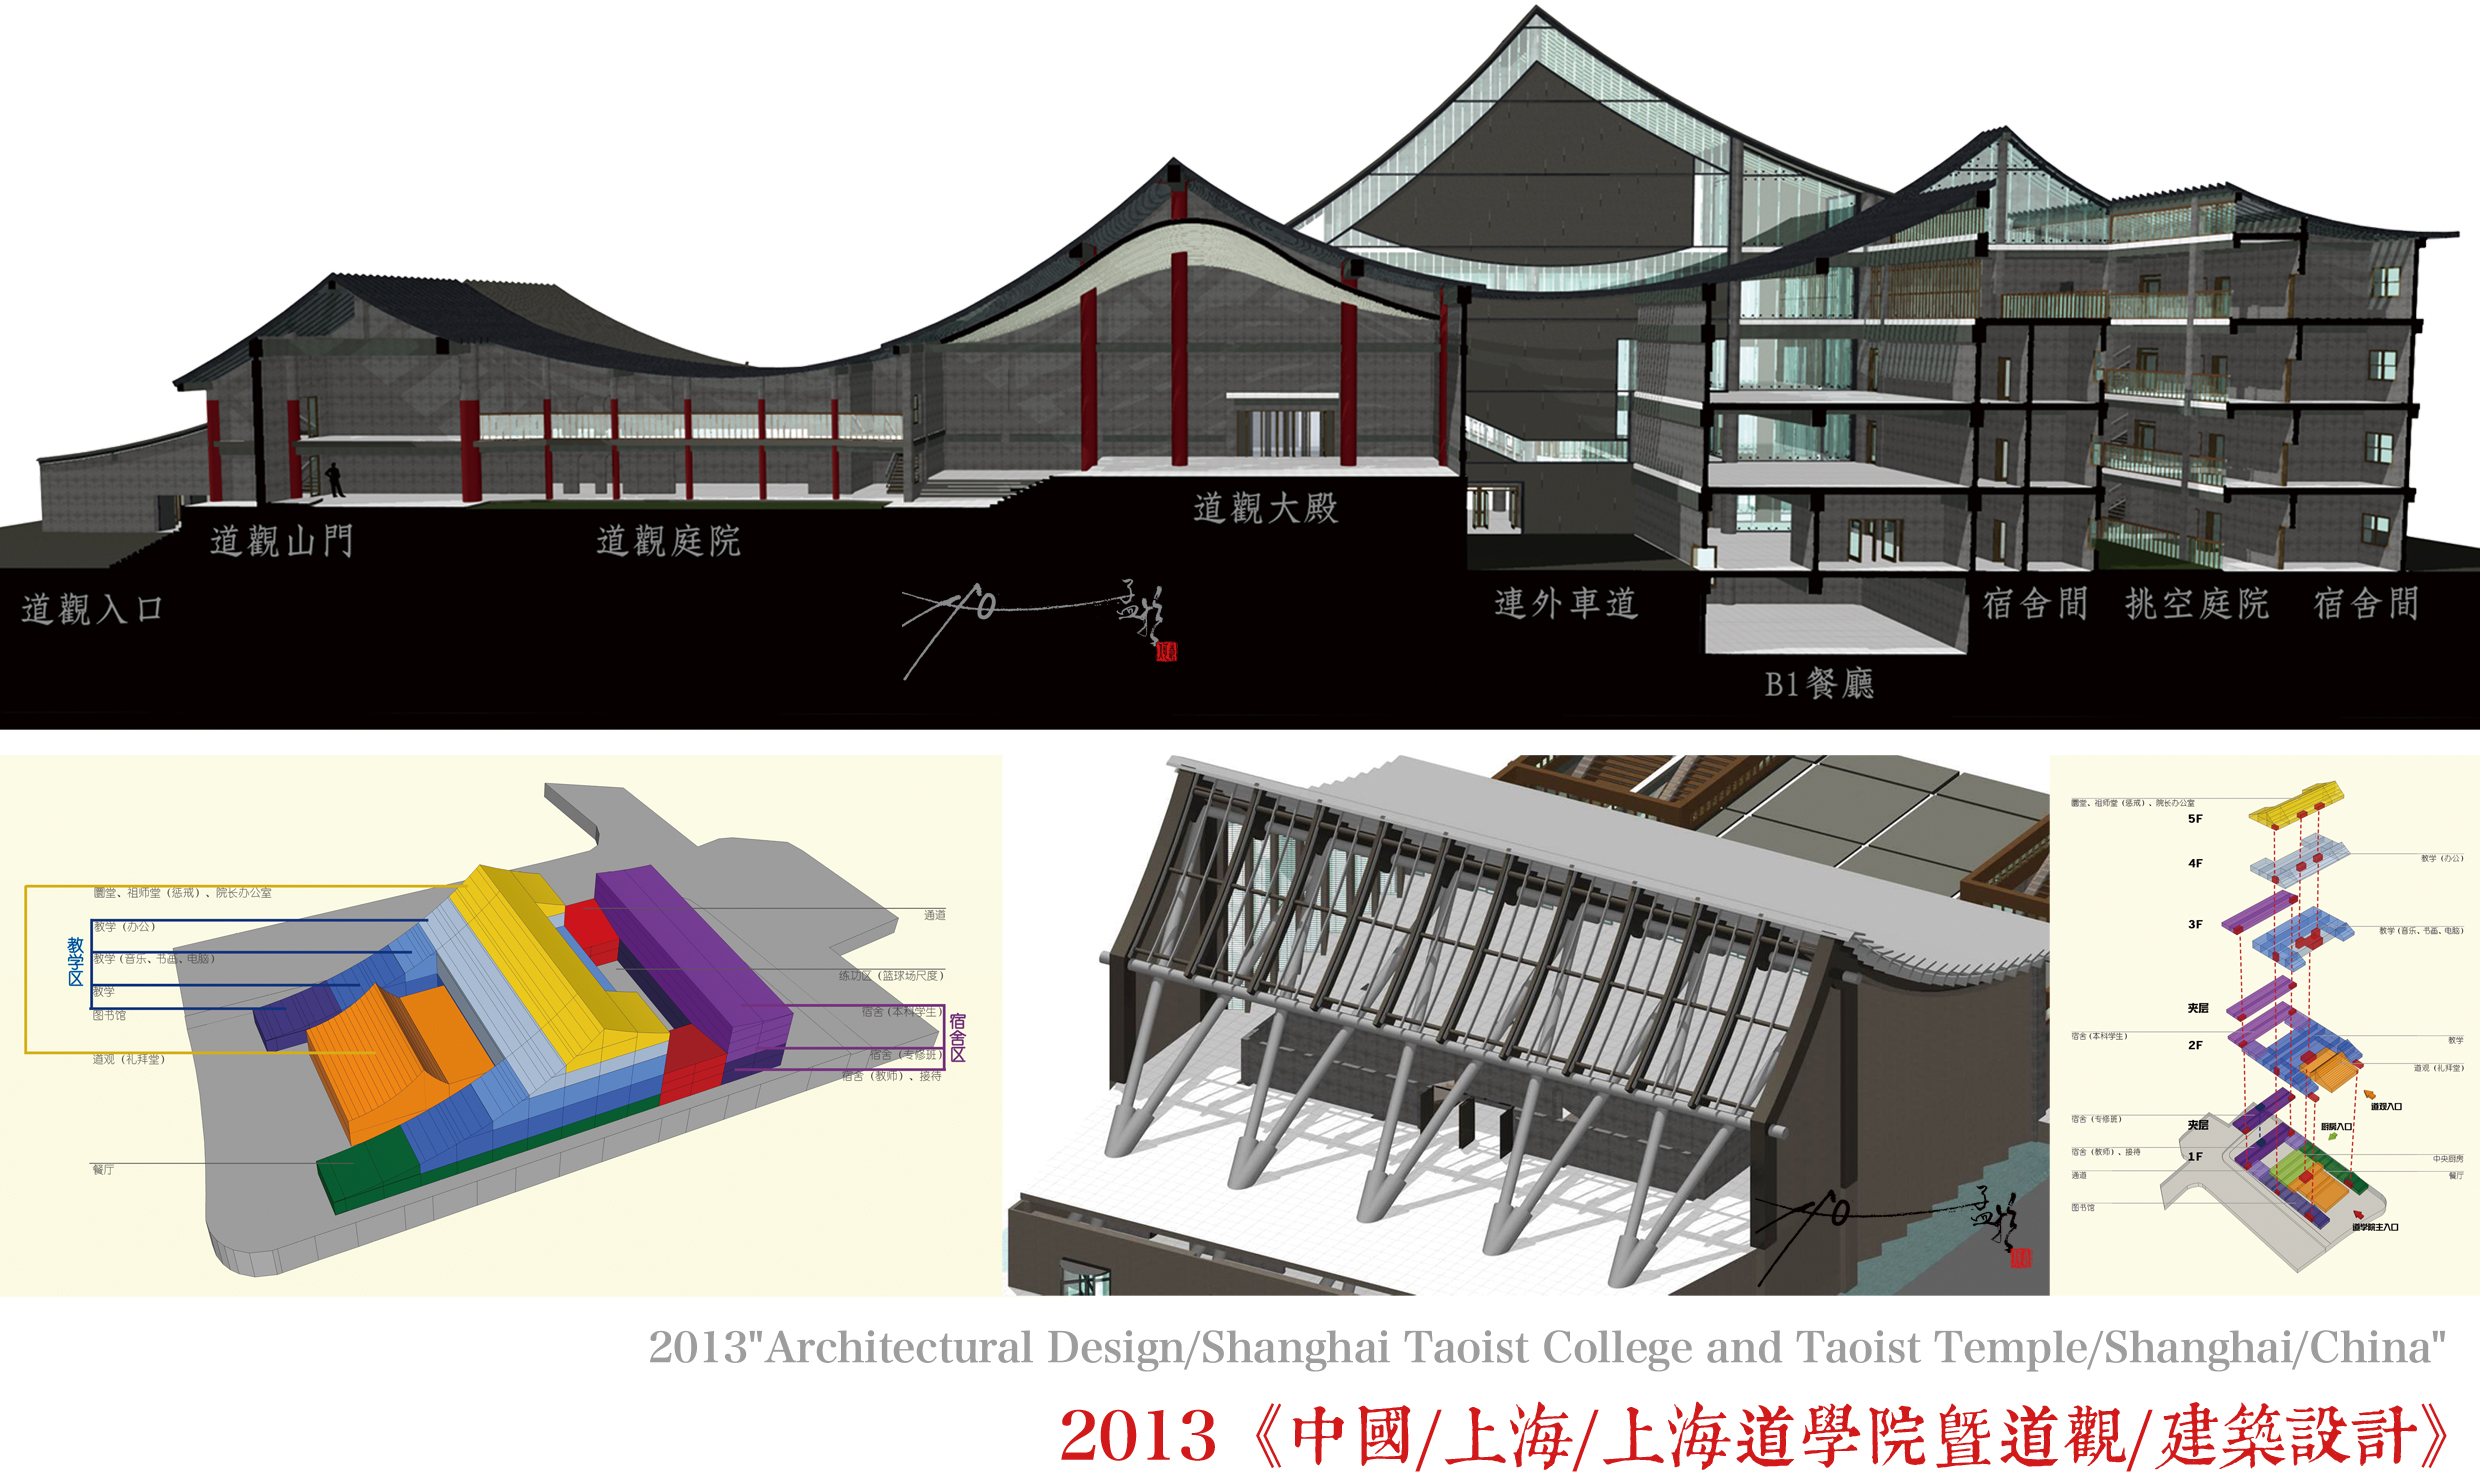 "2013""Architectural Design/Shanghai Taoist College and Taoist Temple/Shanghai/China""2013《中國/上海/上海道學院暨道觀/建築設計》【Just Jump Culture all rights reserved子丑文創/版權所有】"